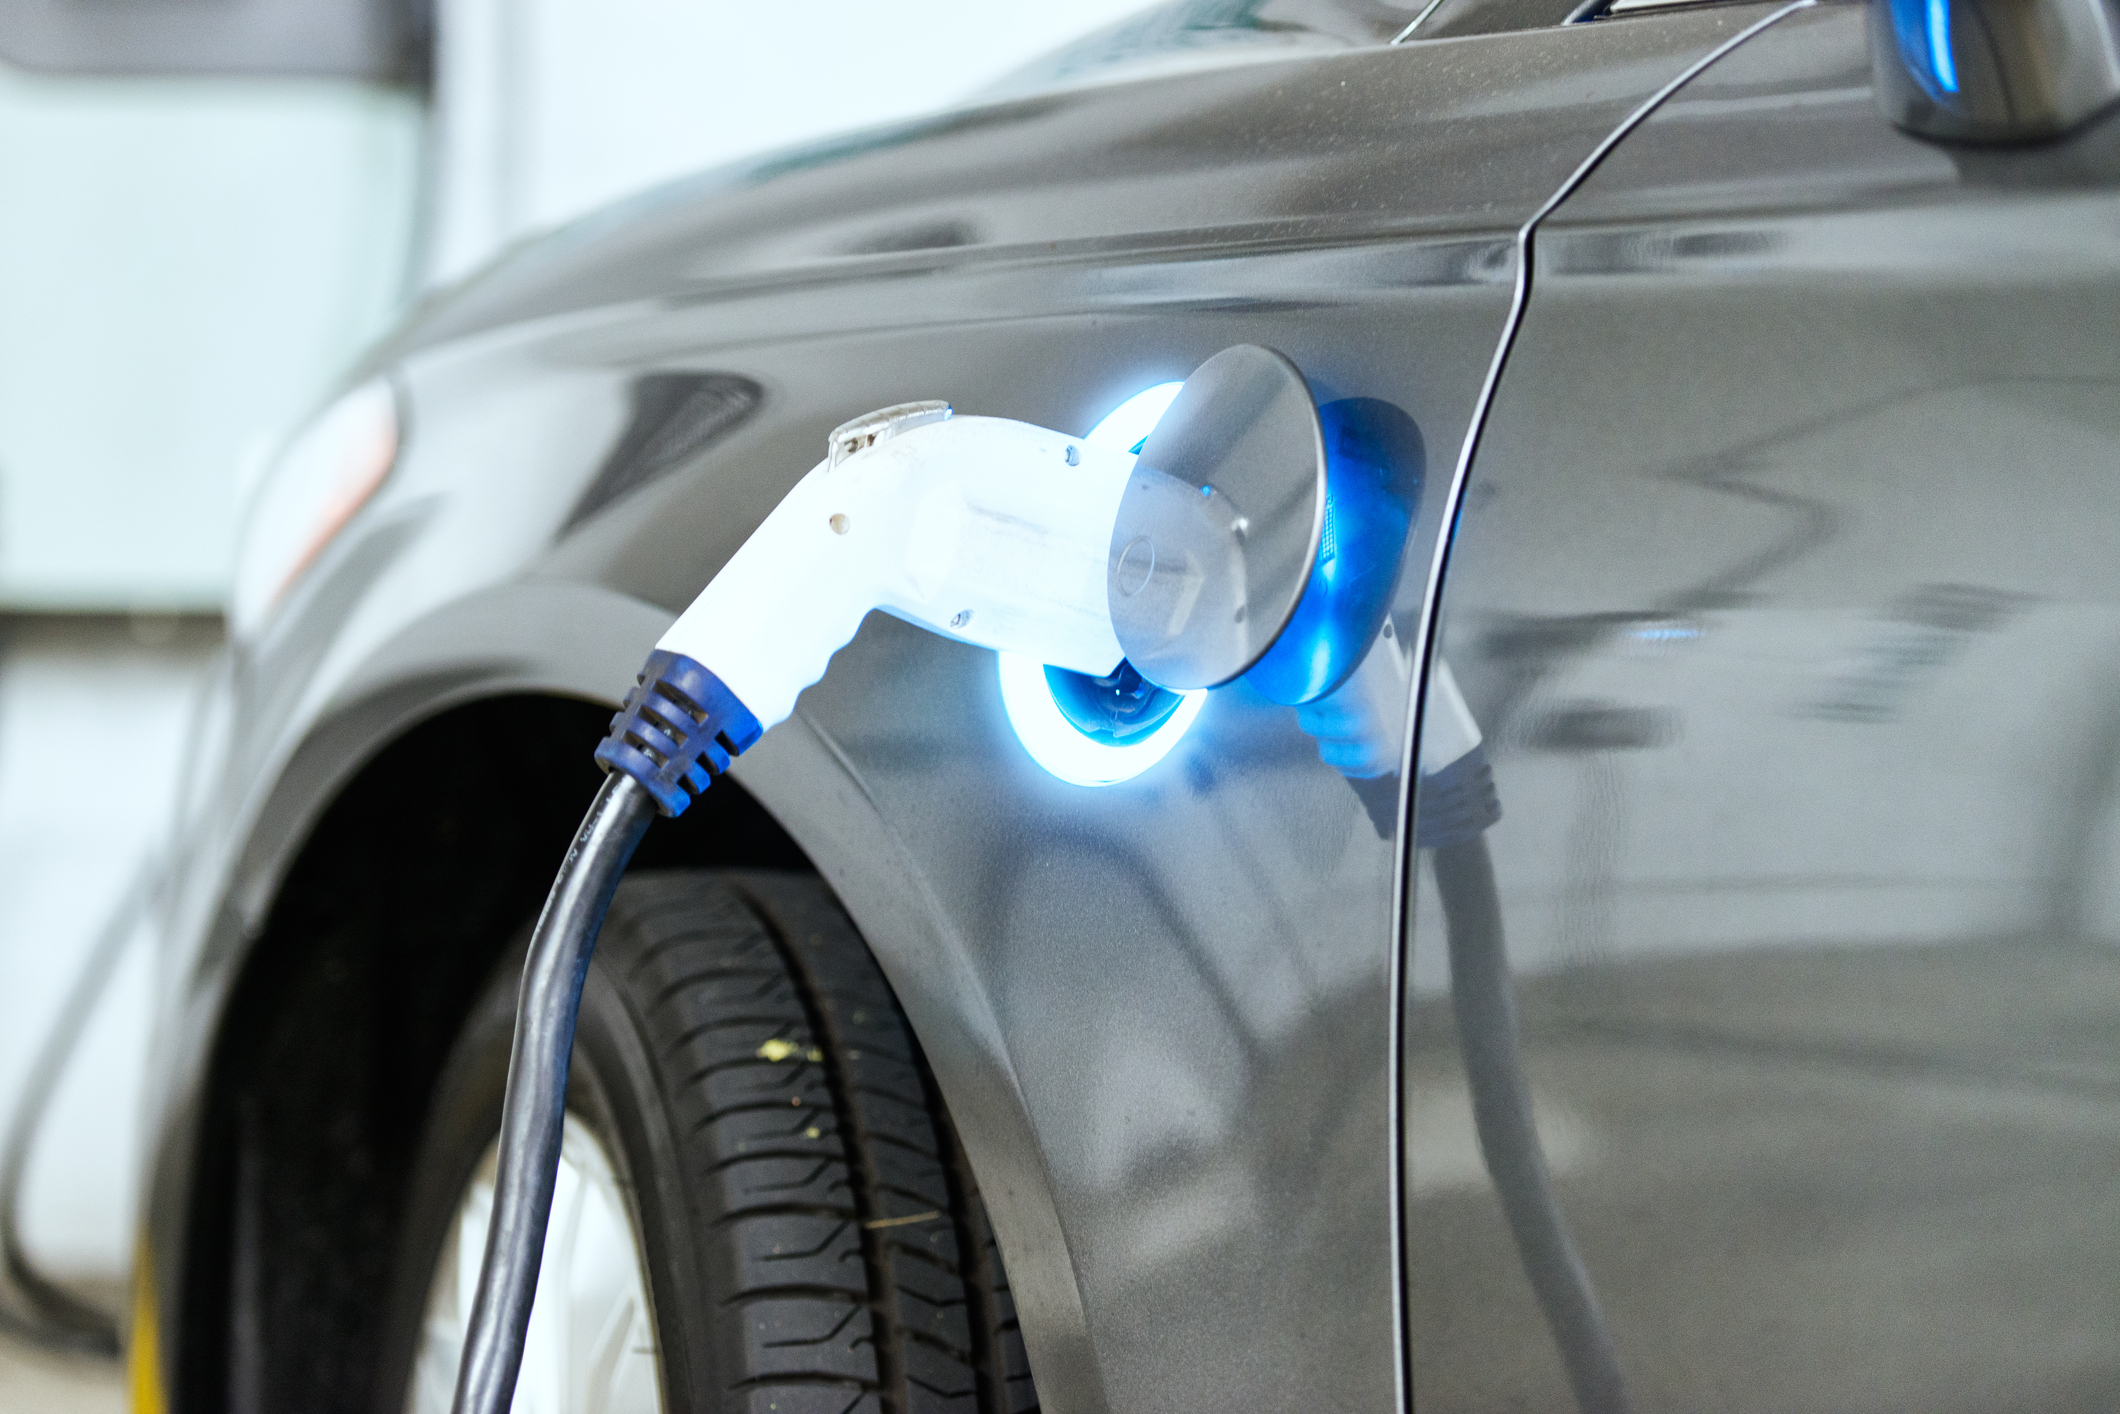 EV owners advised to unplug during lockdown